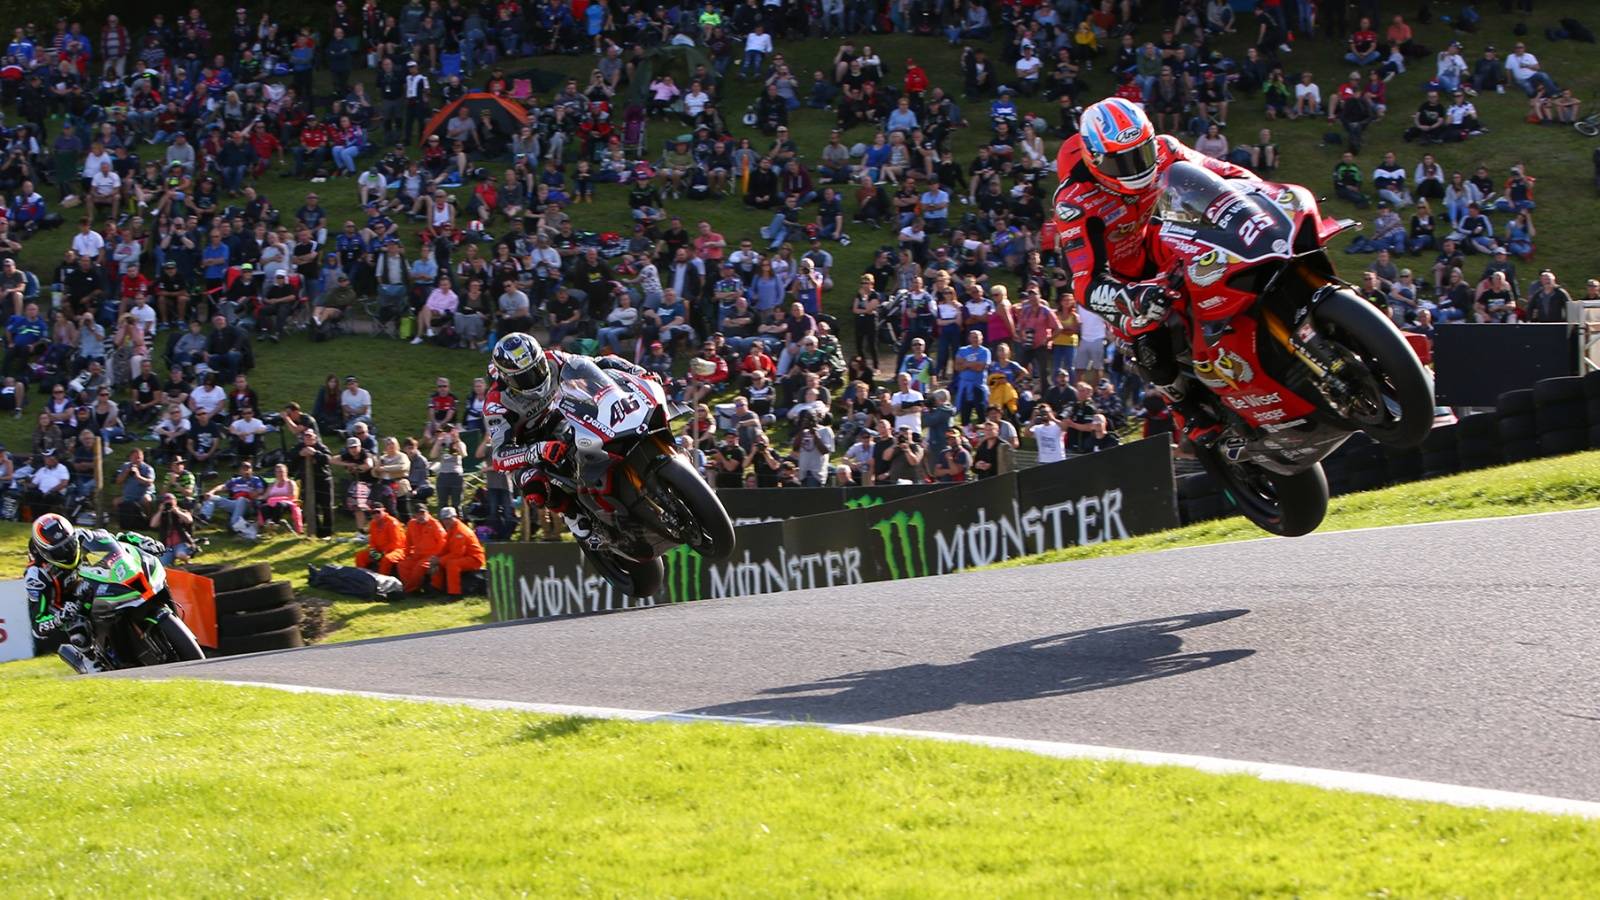 NoTodoMotoGP: Victoria con liderato para Josh Brookes, King of the Mountain 2019